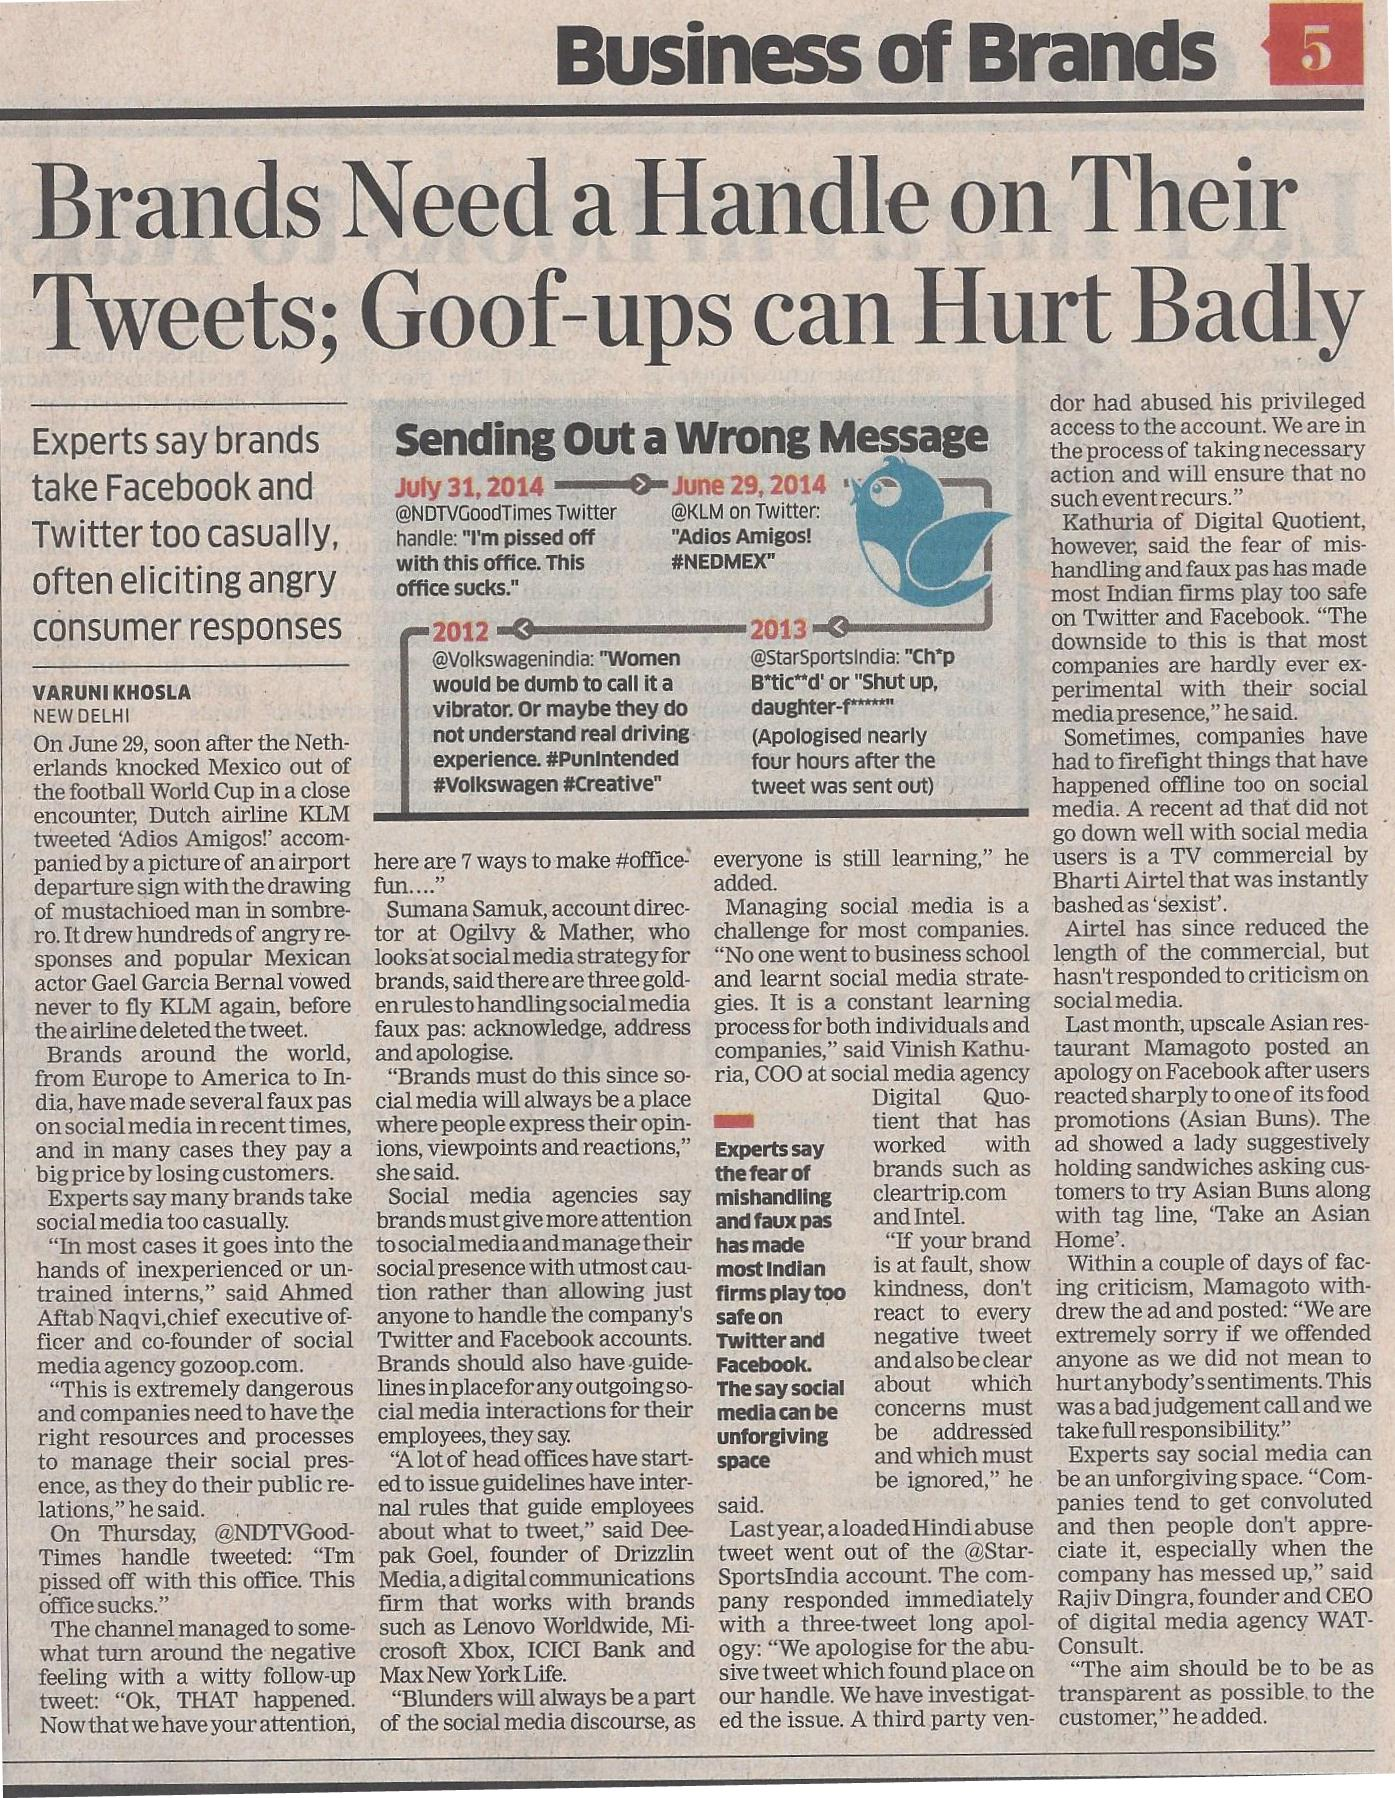 The Economic Times, 4 August, pg. 5